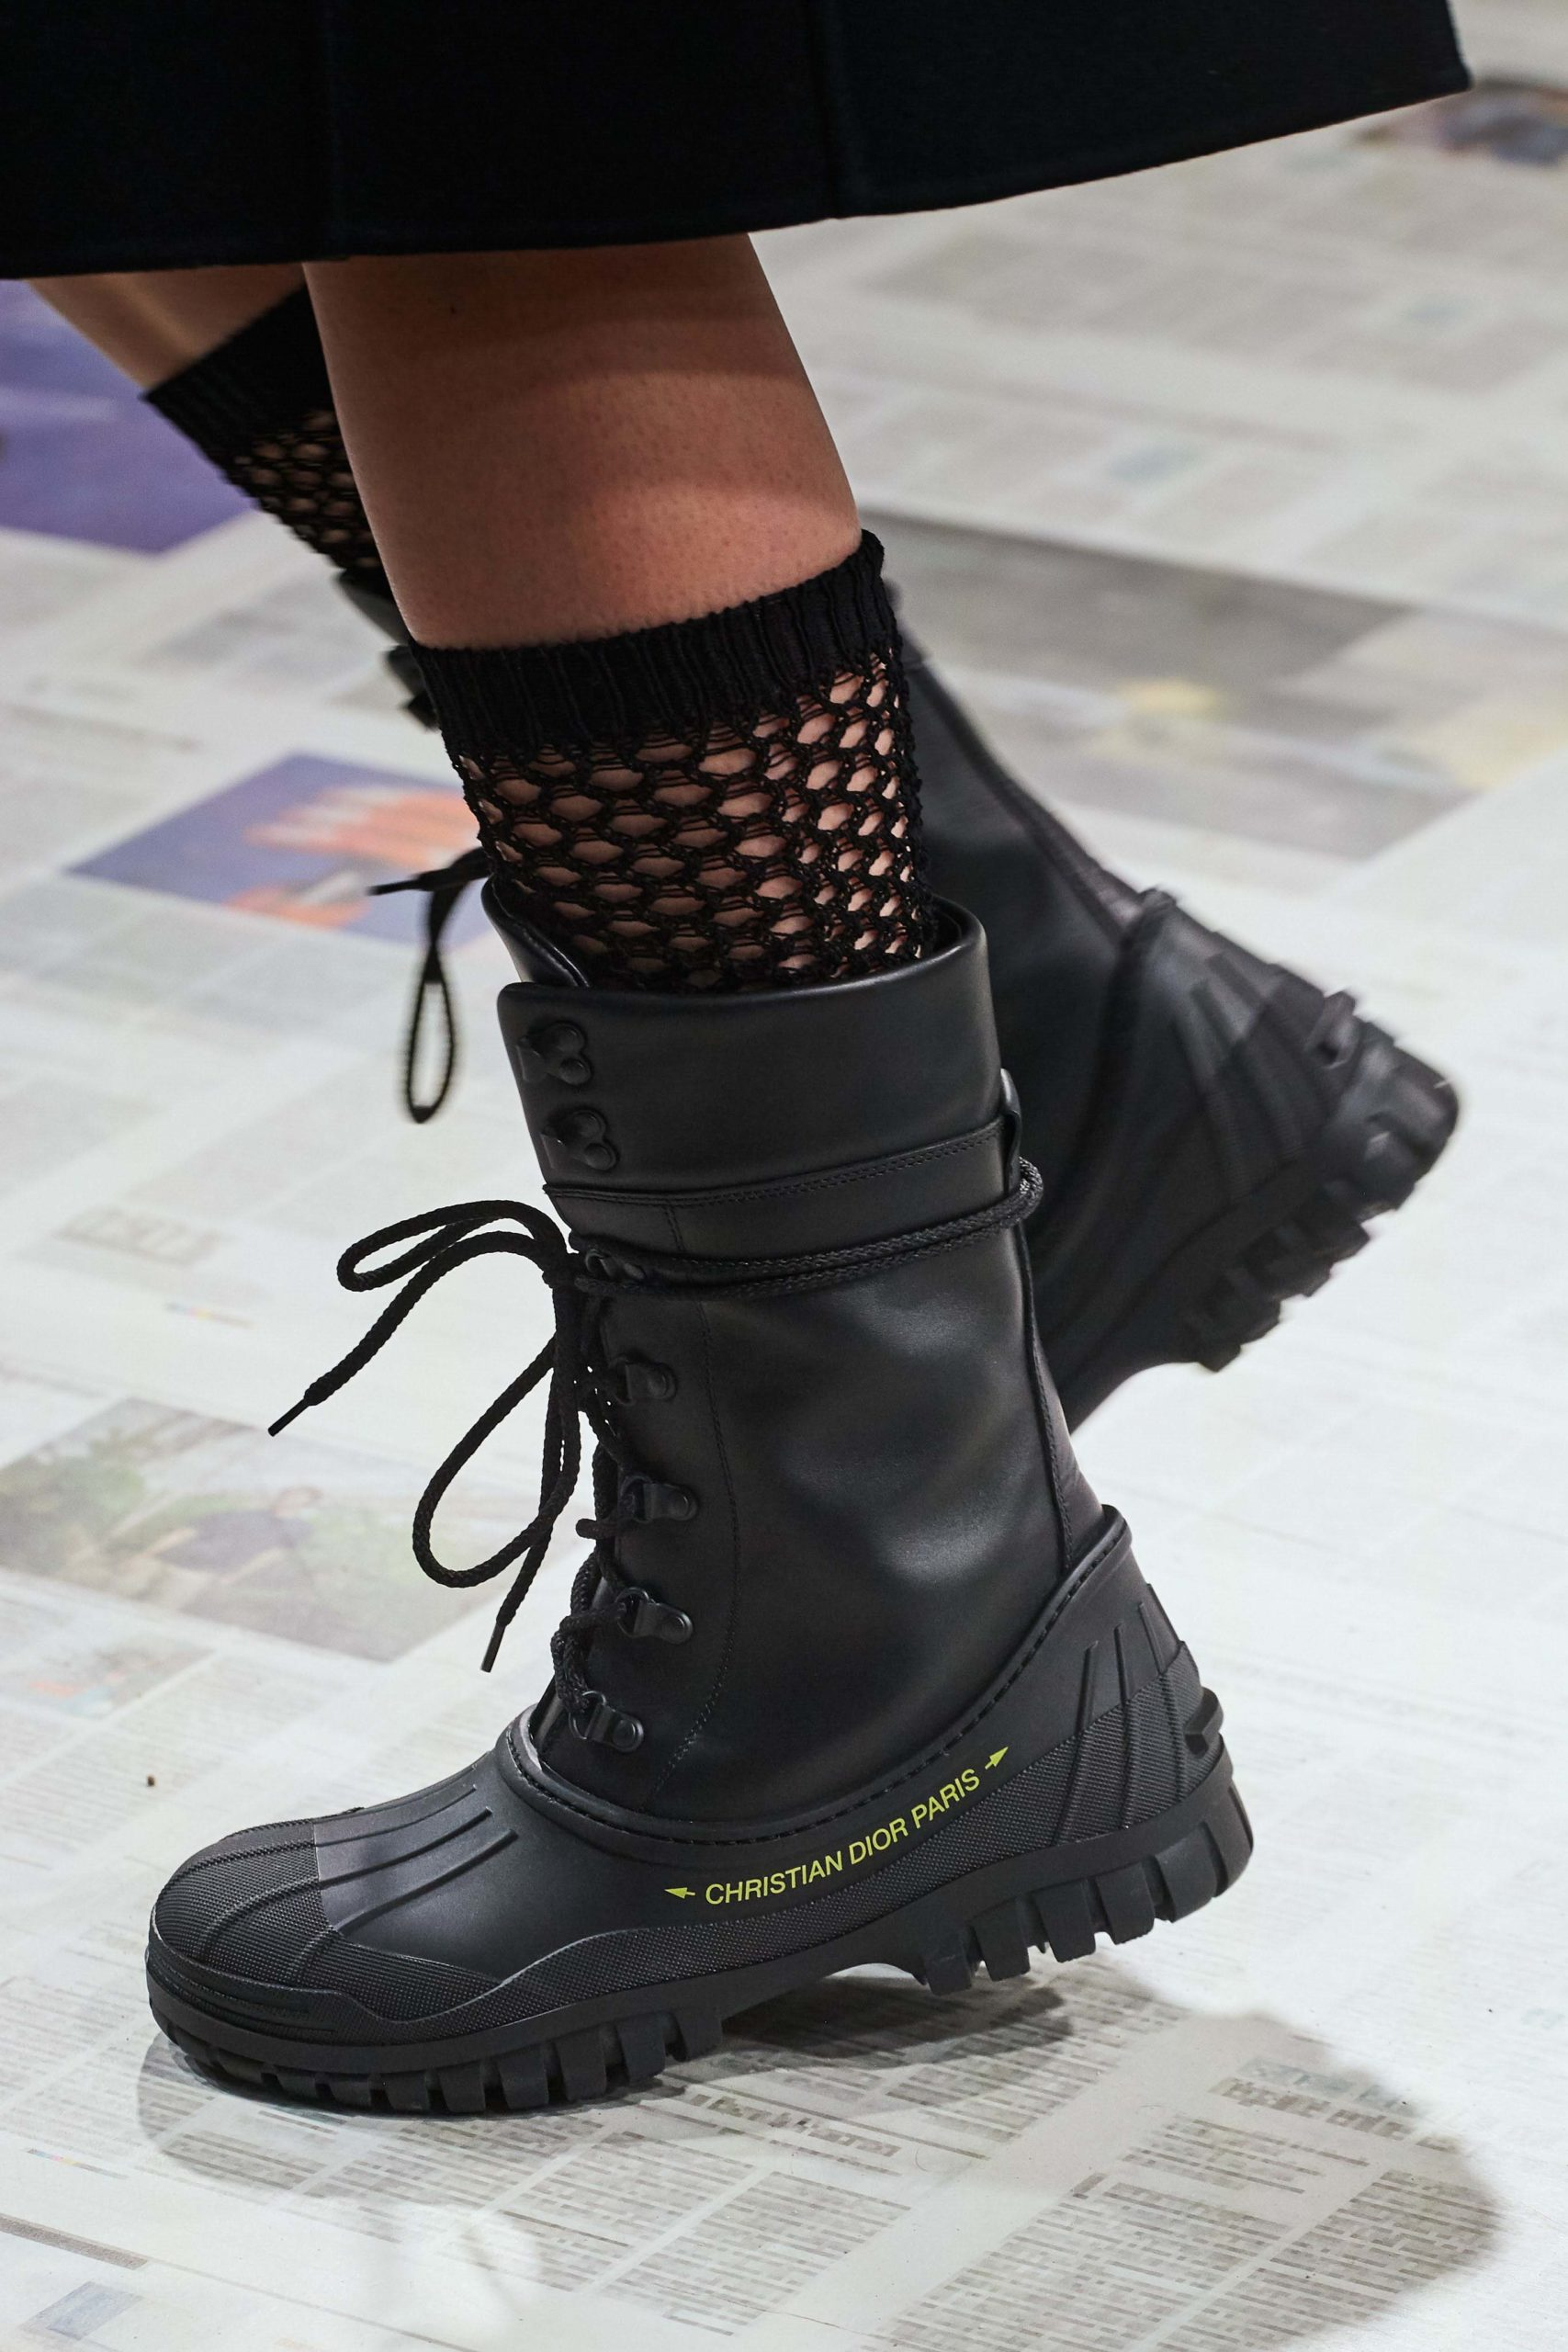 Dior Fall Winter 2020 trends runway coverage Ready To Wear Vogue details runway rubber rain boots fall 2020